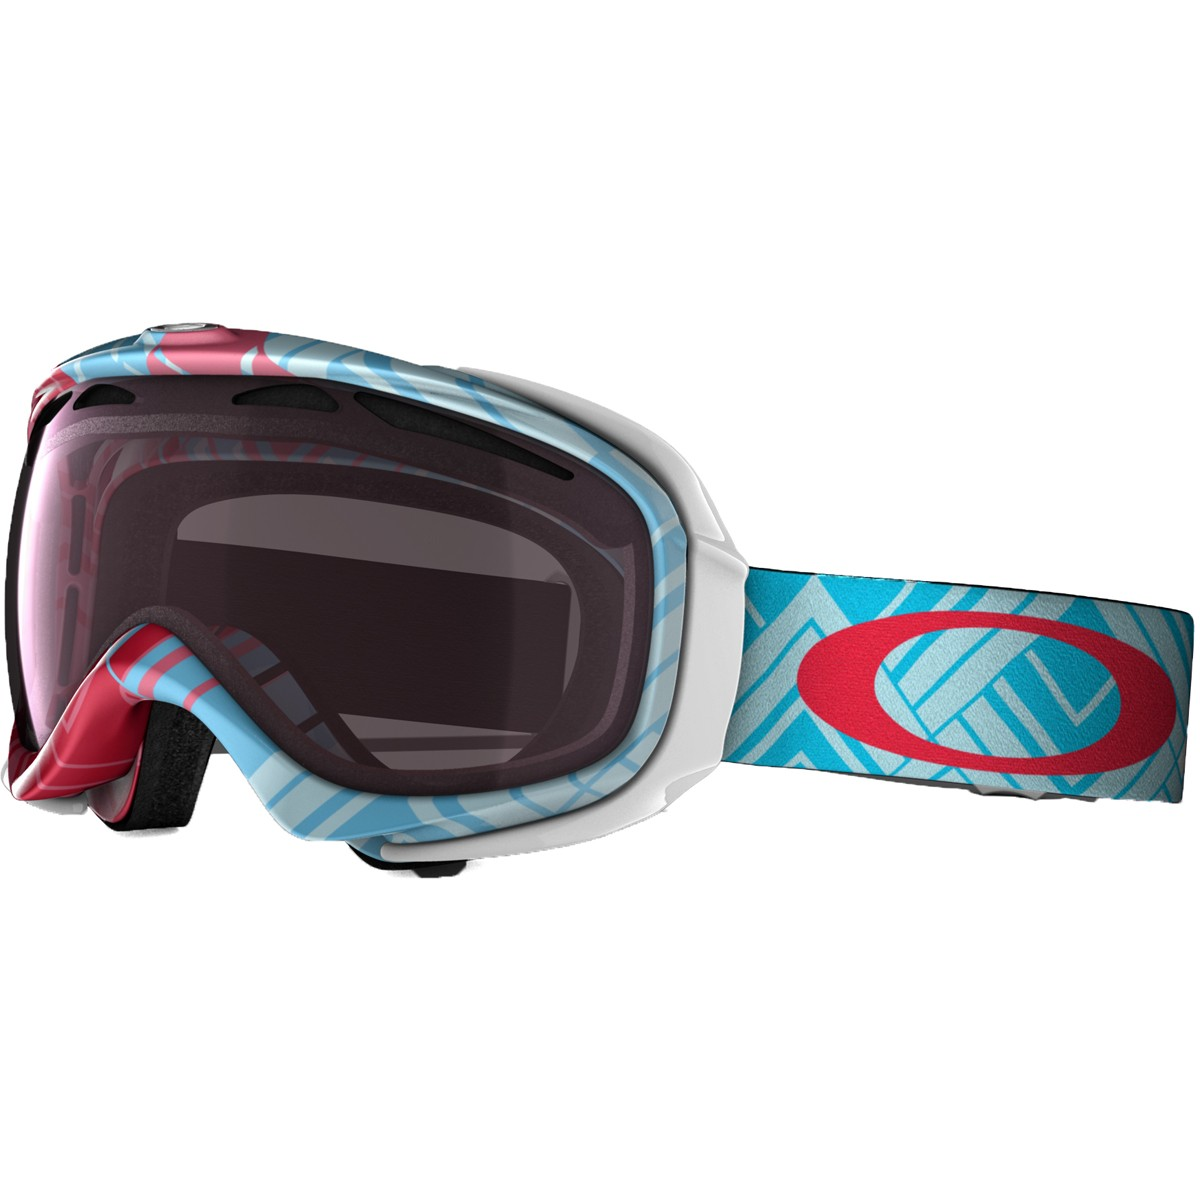 Oakley Elevate Snowboard Goggles 2015 - Braided Blue Red - Rose